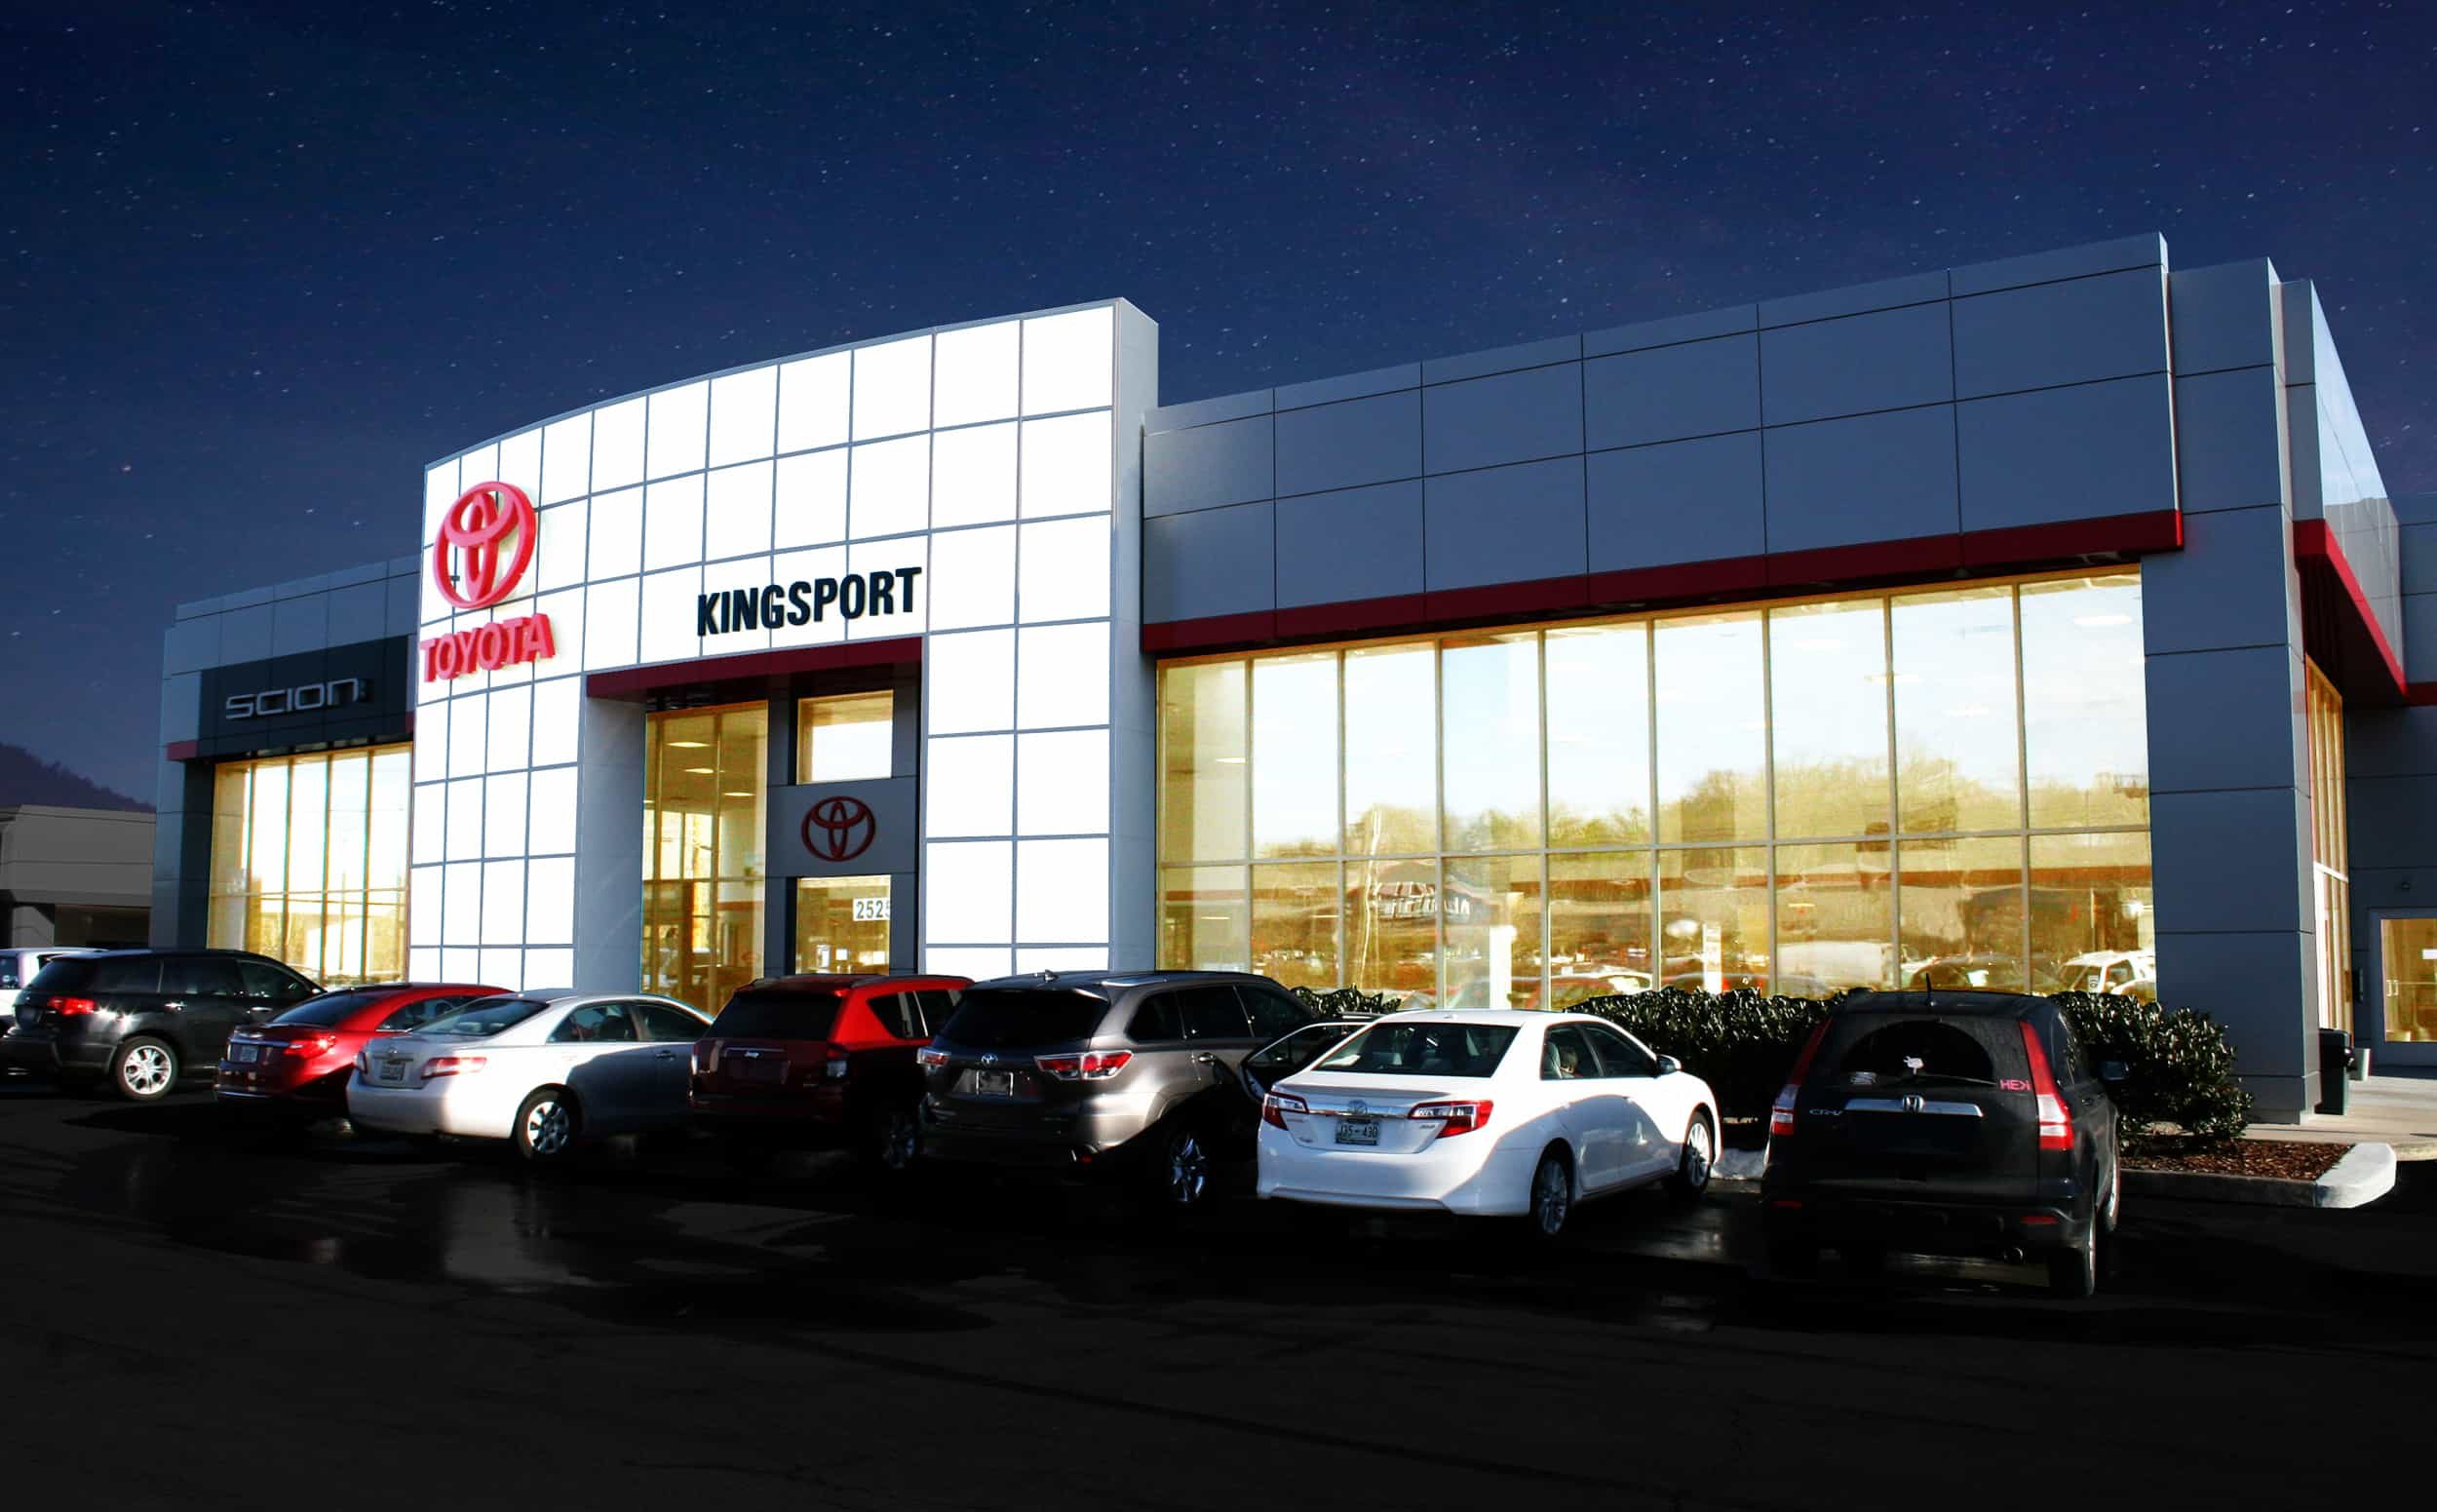 Toyota of Kingsport Exterior